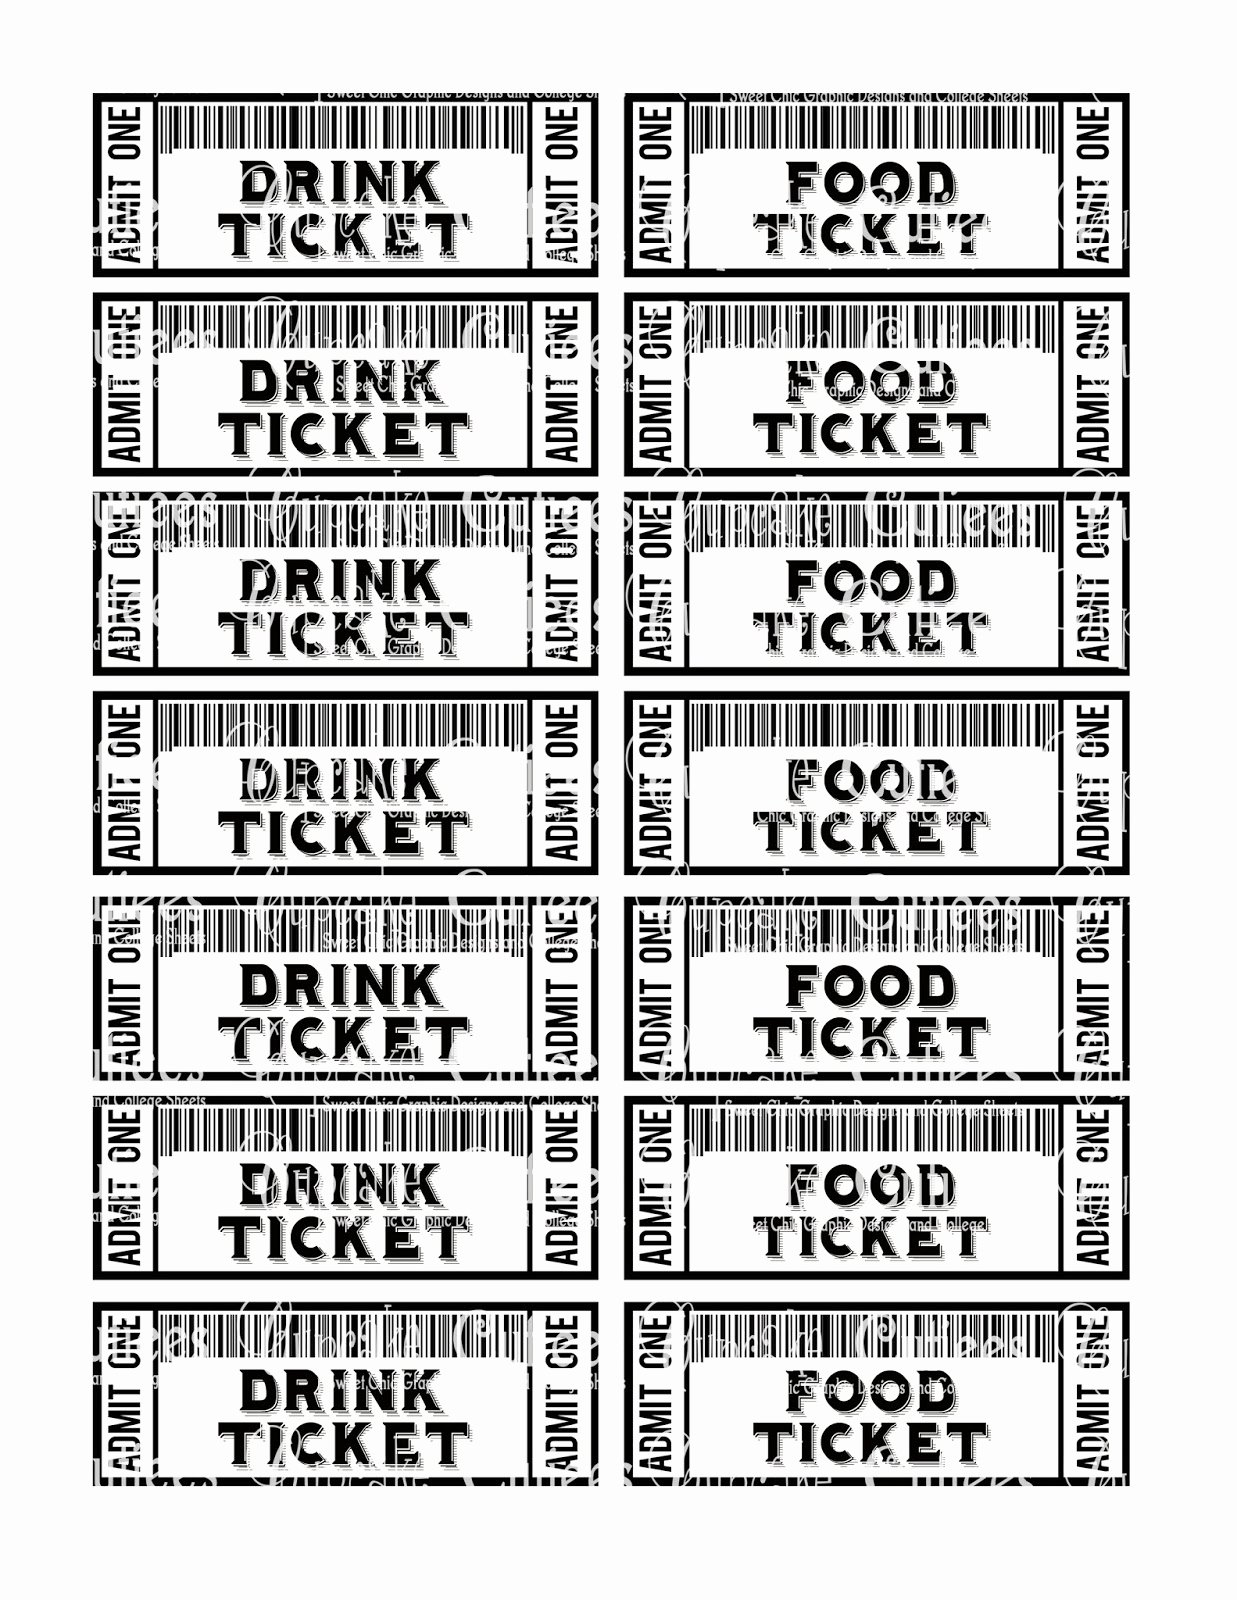 Free Printable Tickets Template Beautiful Food Ticket Template Portablegasgrillweber